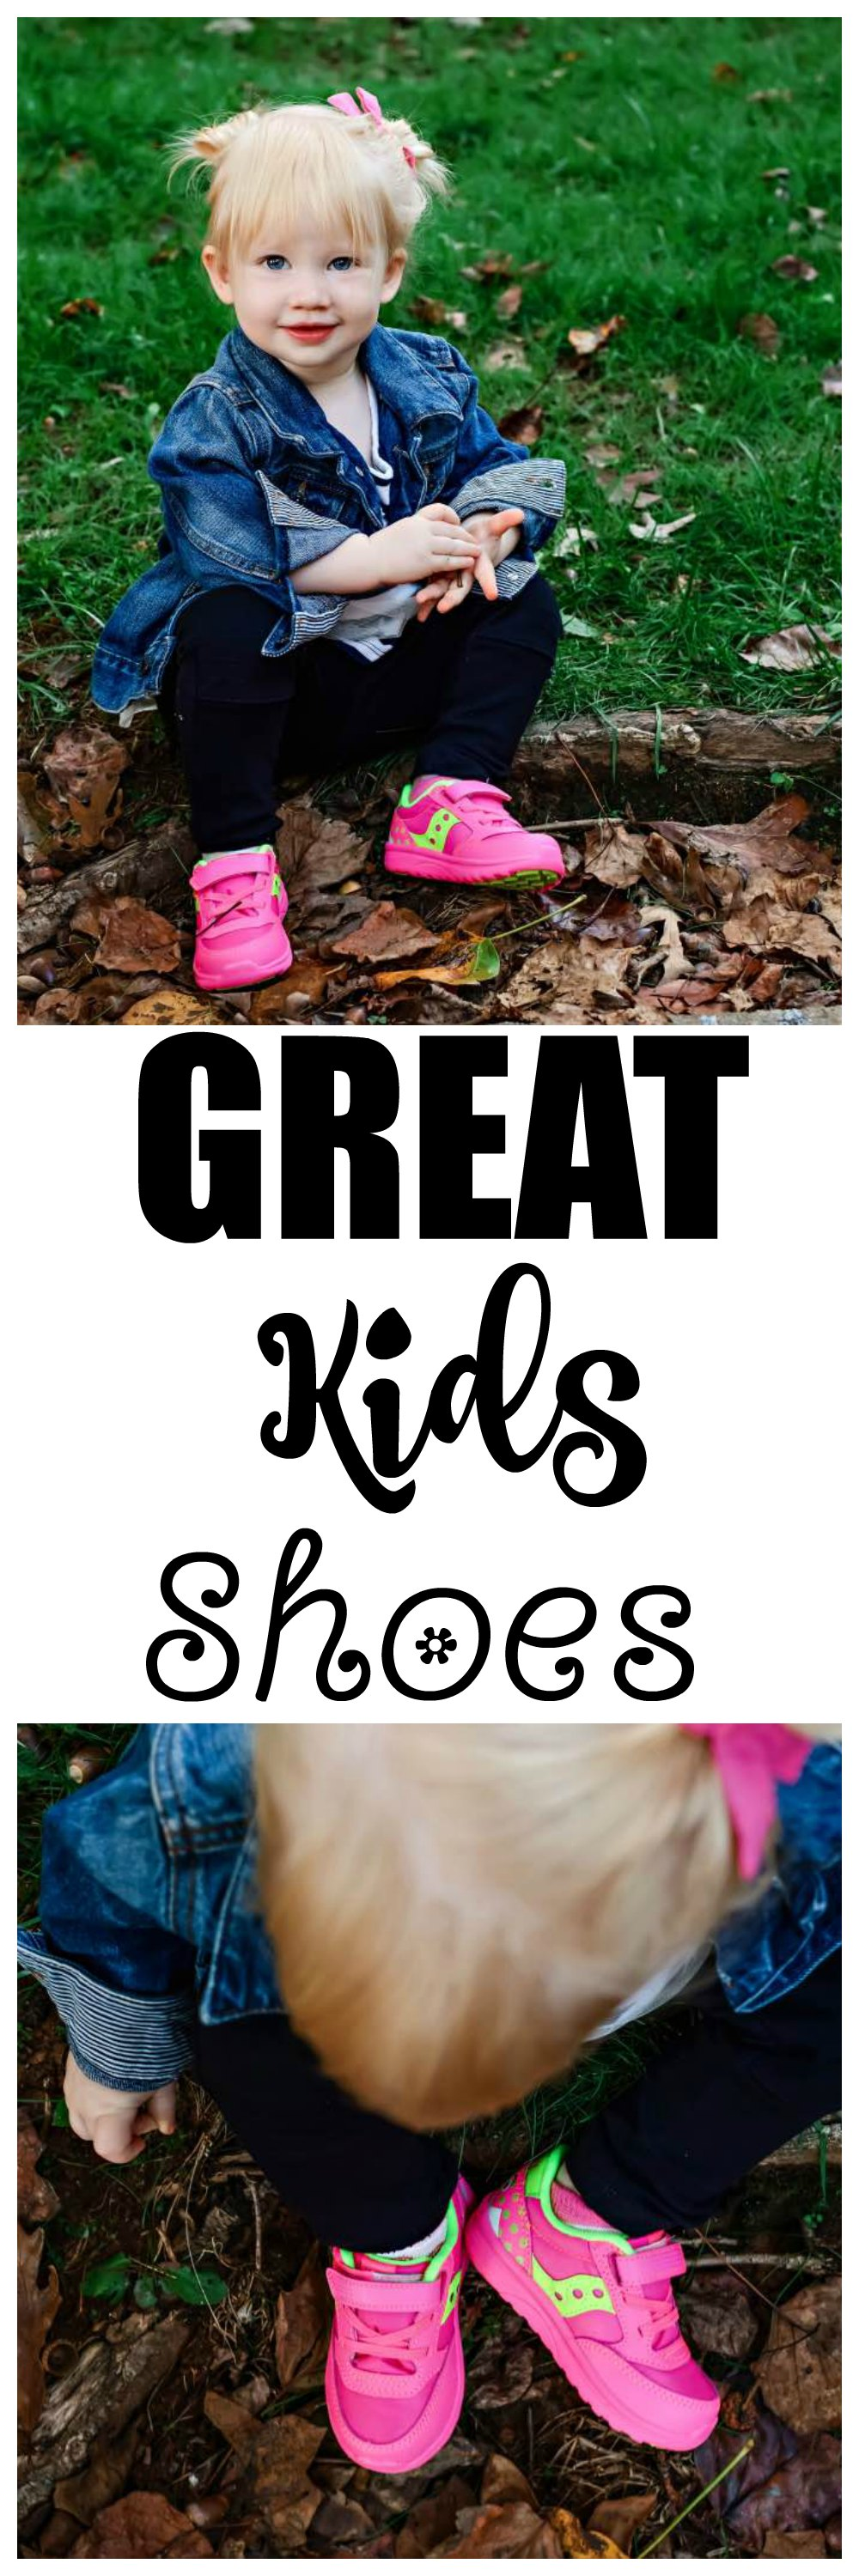 great kids shoes - Great Toddler Shoes for Girls by Atlanta mom blogger Happily Hughes